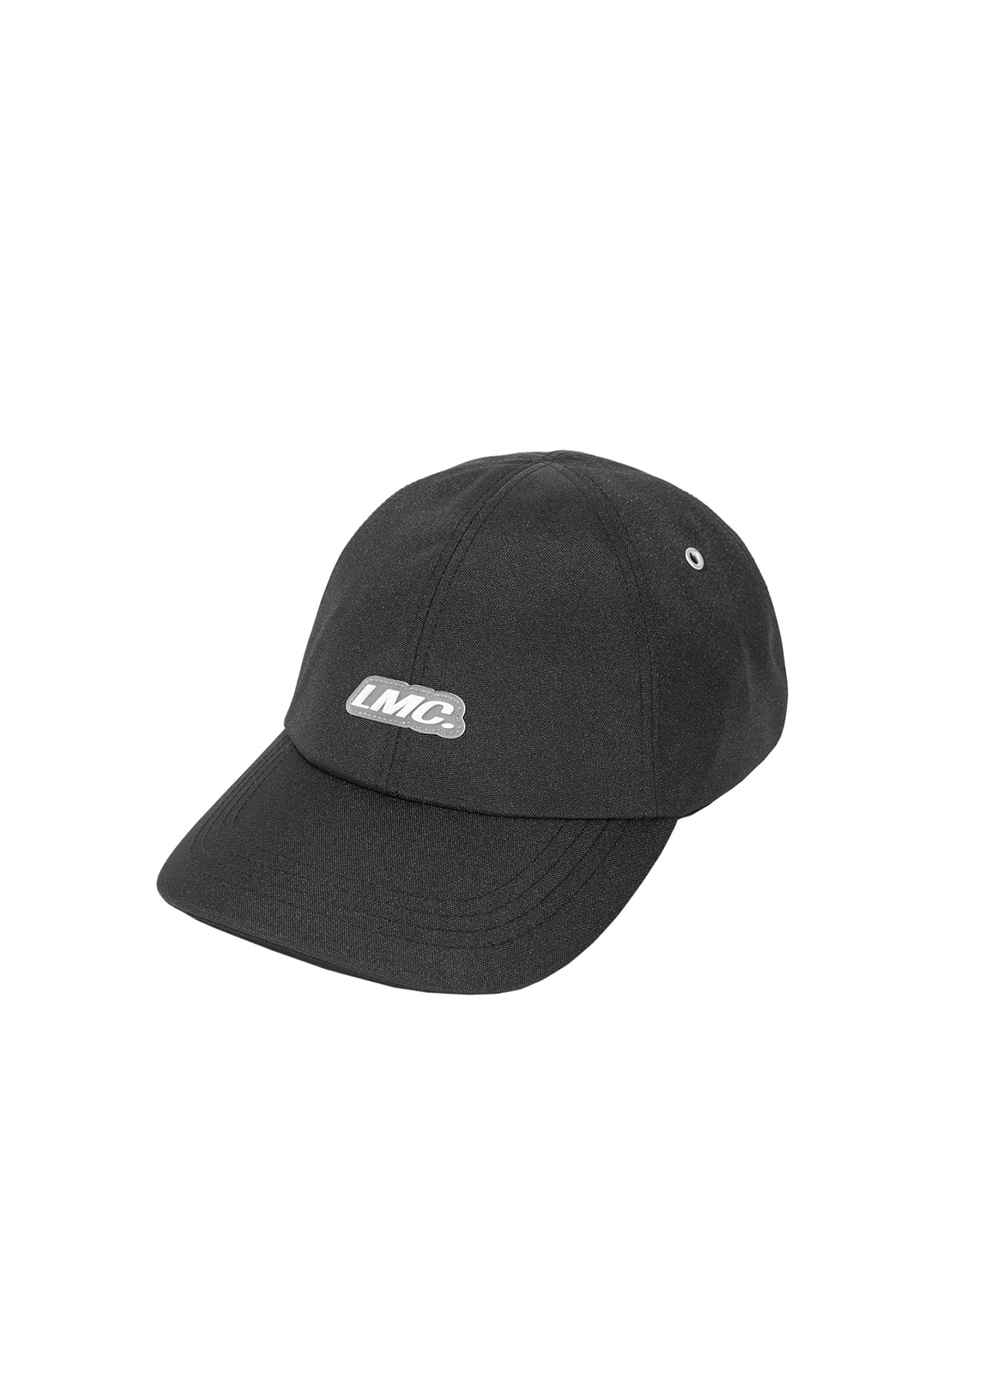 LMC ITALIC POLY 6 PANEL CAP black